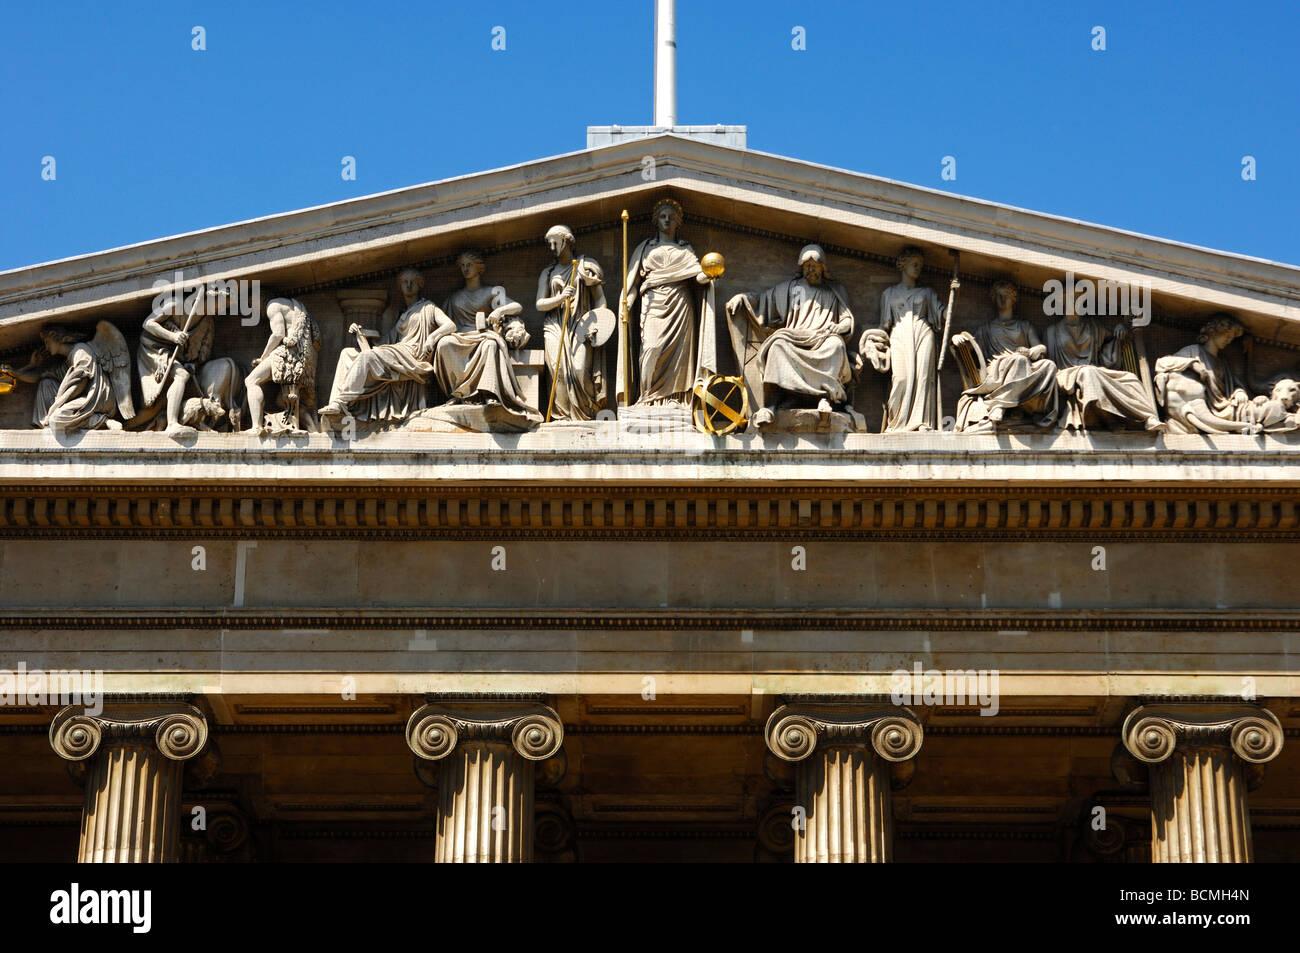 British Museum pediment with allegorical figures over the main entrance, London, United Kingdom - Stock Image